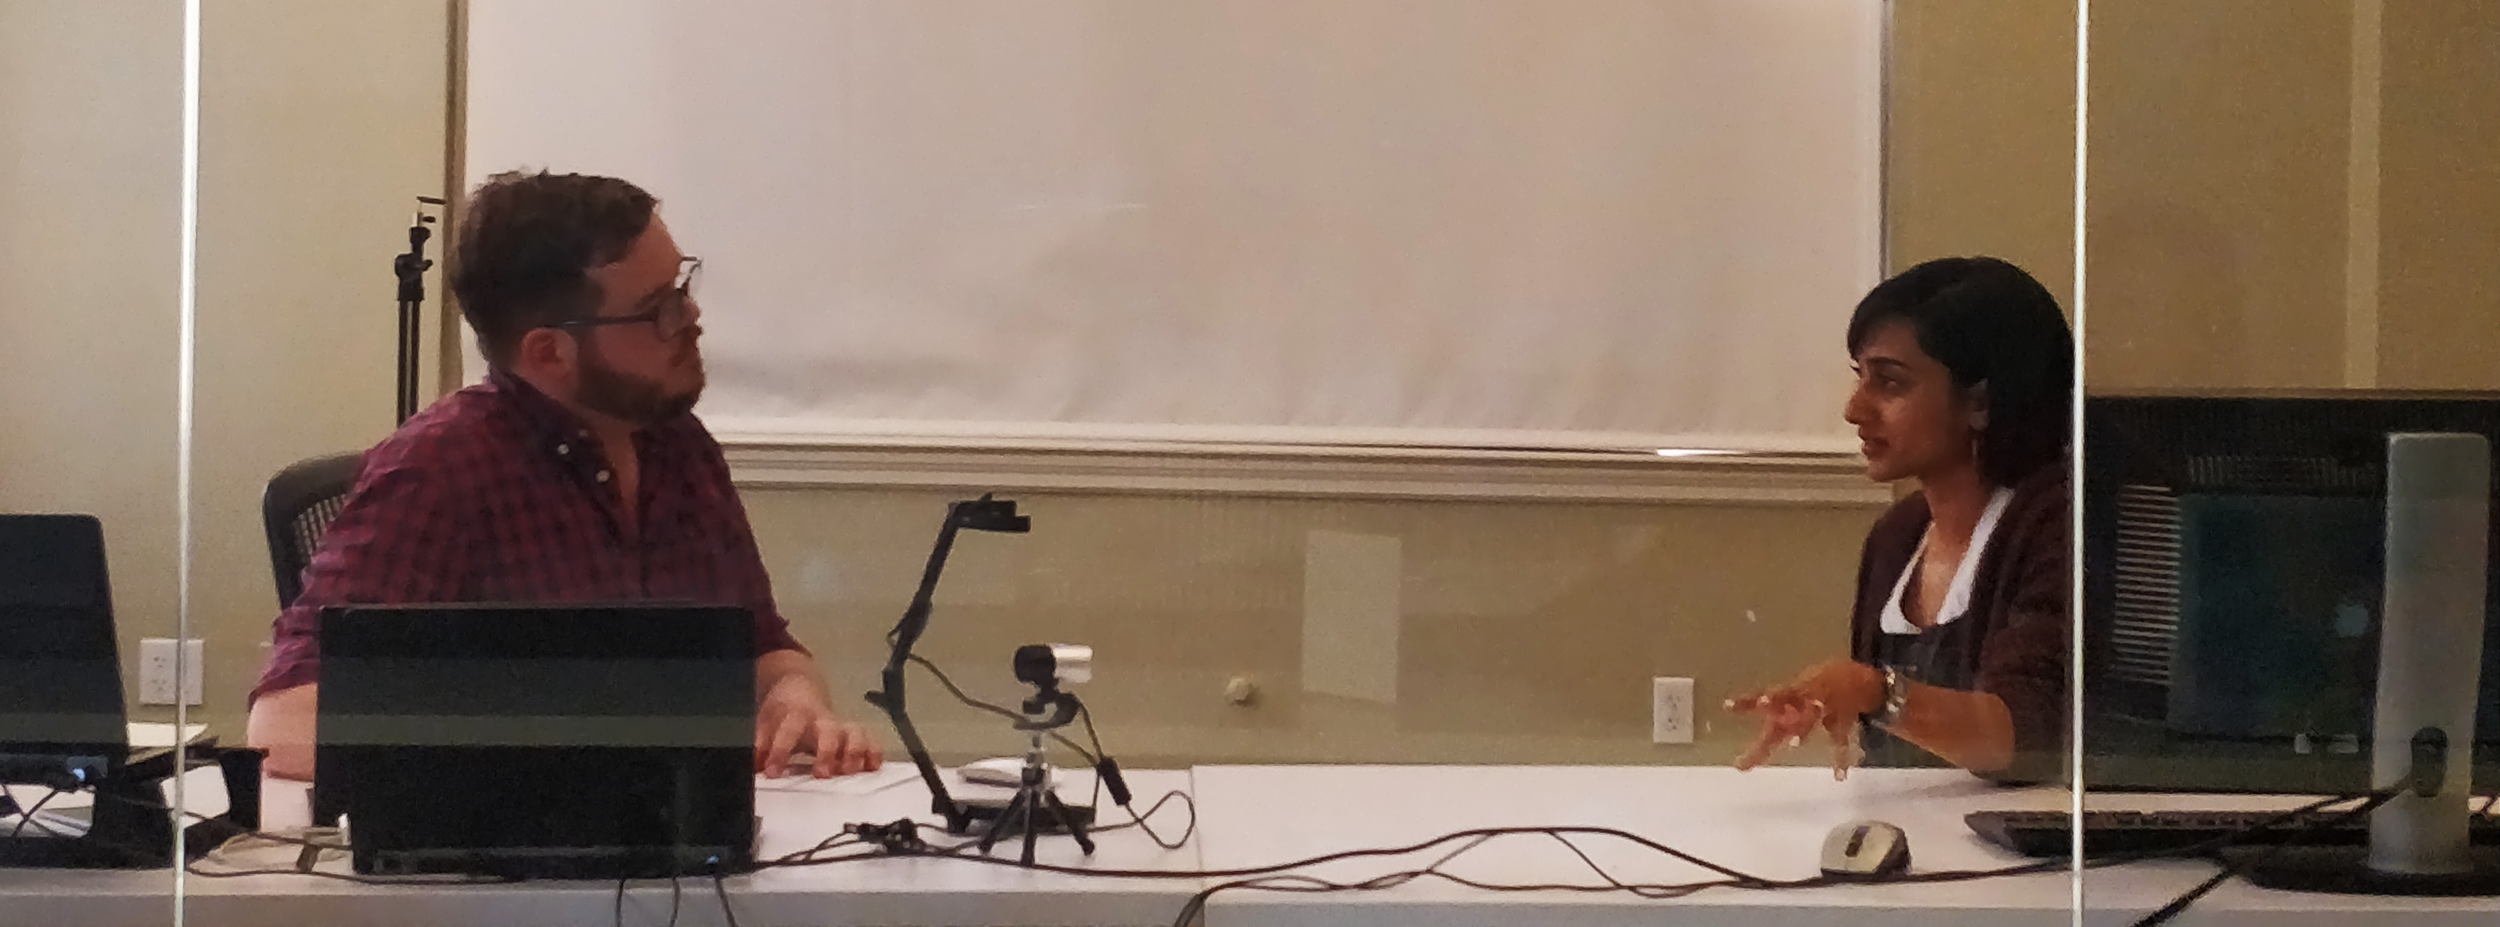 Paul (left) interviewing one of users